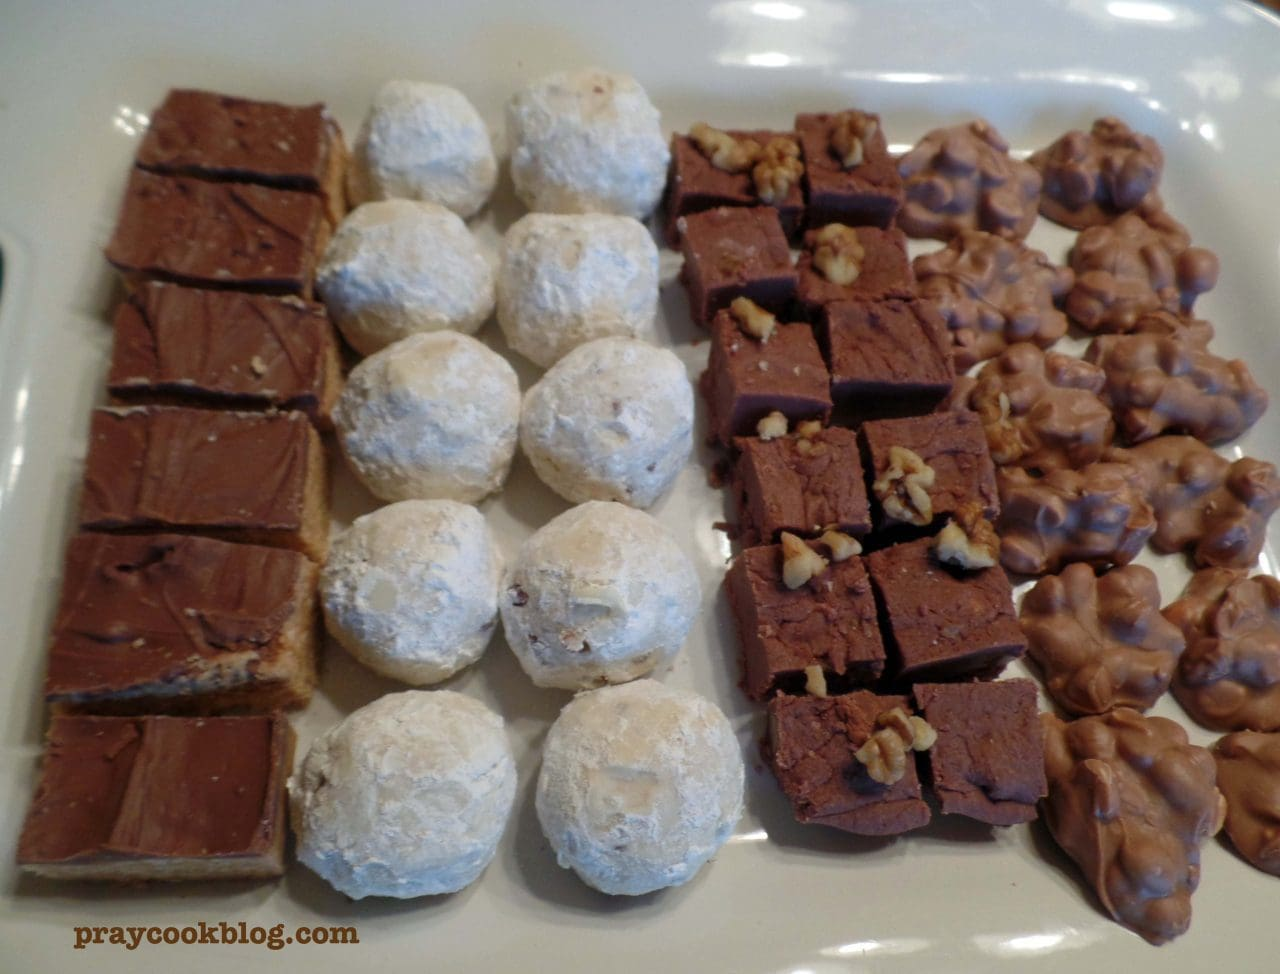 Family, Friends, & Heritage Food: Pecan Puffs, Peanut Clusters, Fudge, Scotch-a-roos